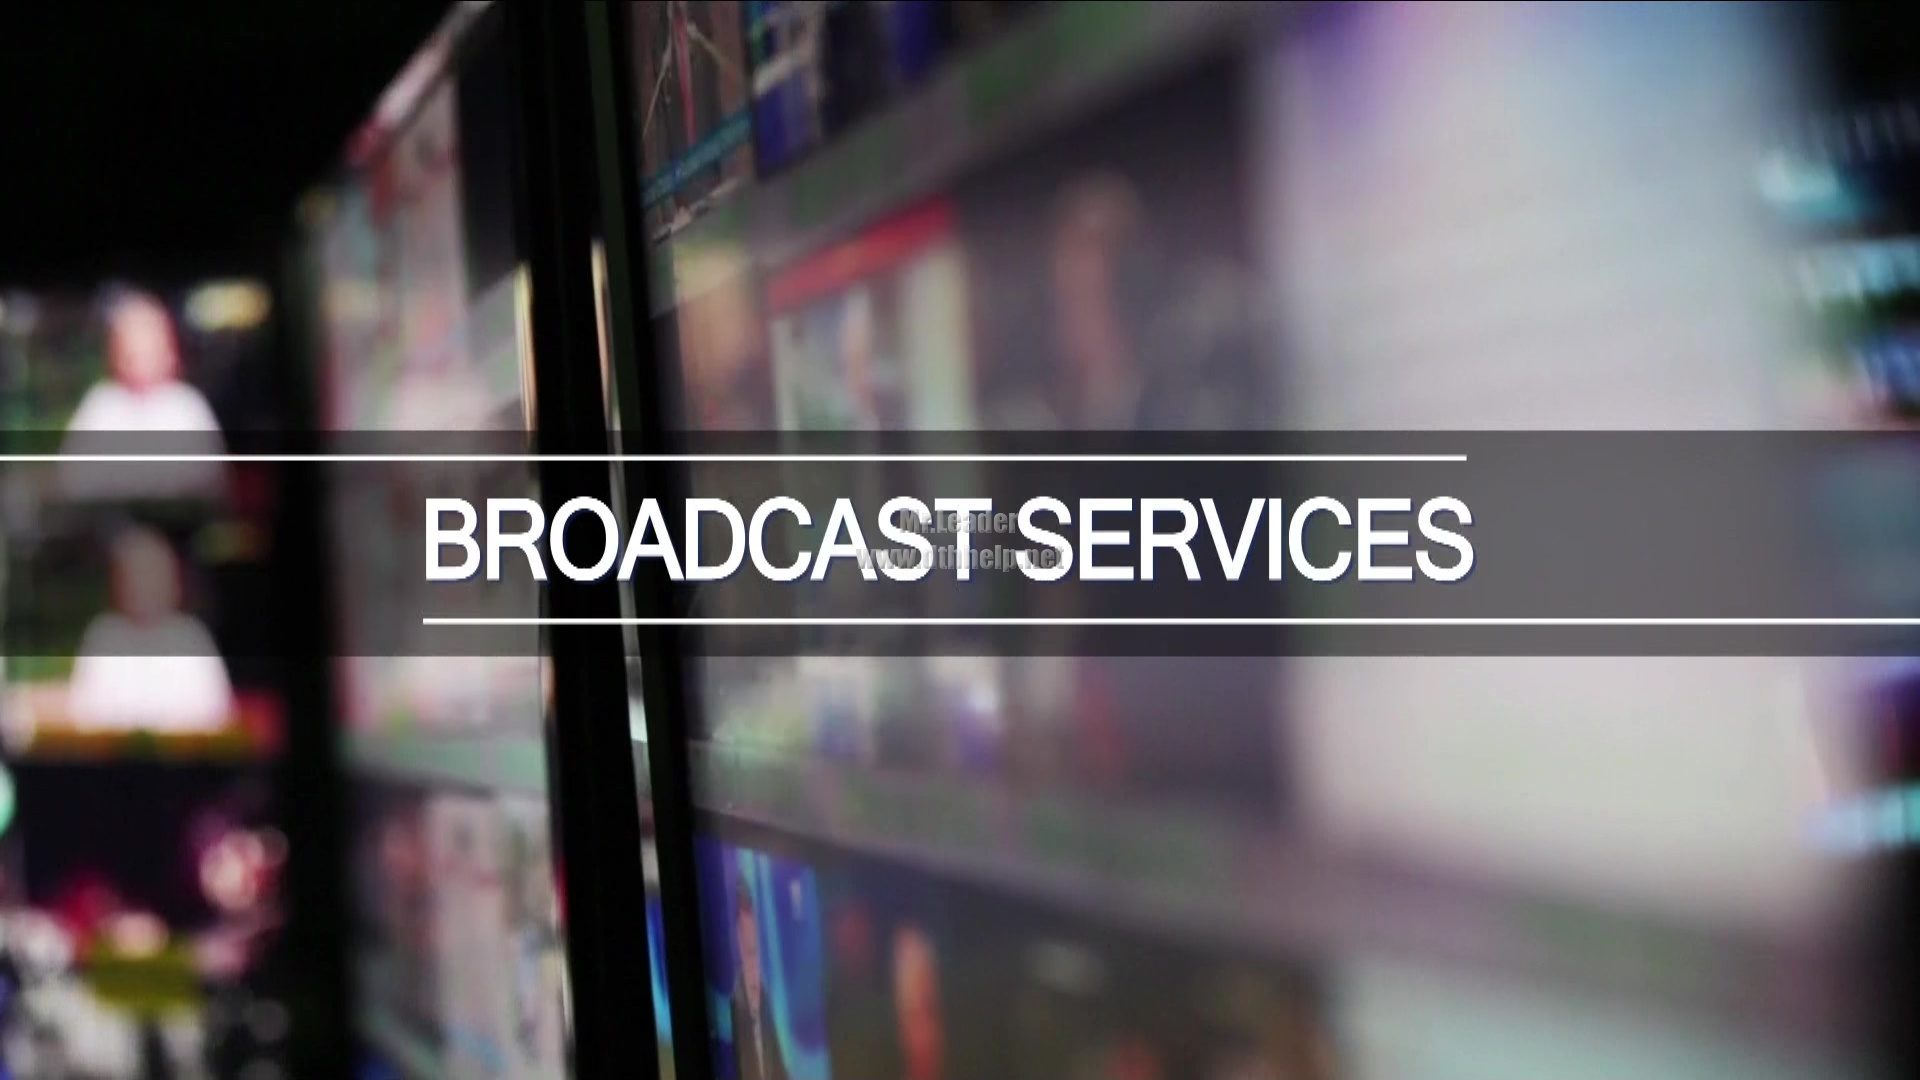 ABS Corporate Video HD added on ABS 2 on the frequency 12524 H – updated on 11-August-16 at 15:14